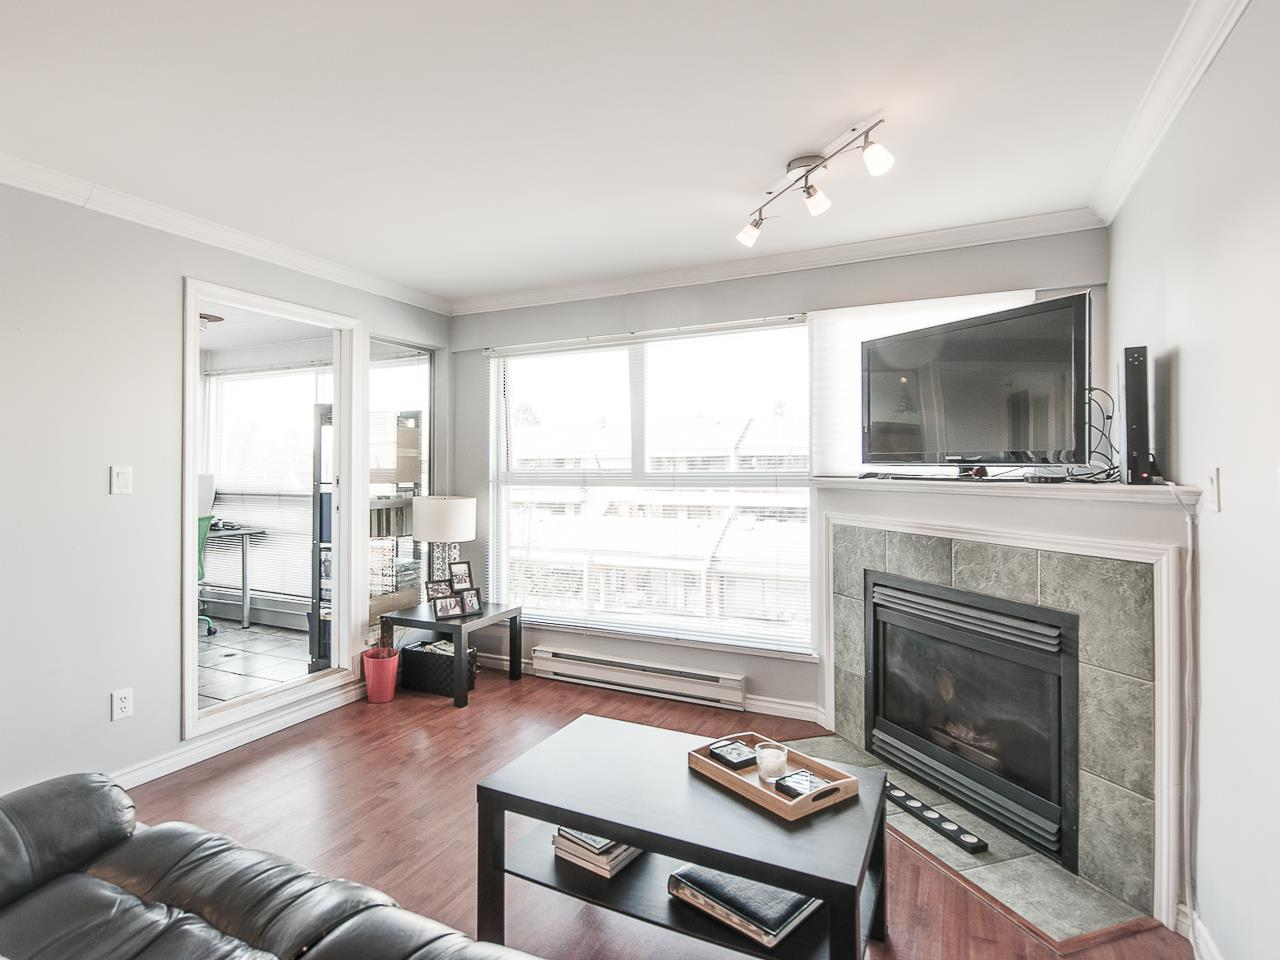 Photo 3: 304 2025 STEPHENS STREET in Vancouver: Kitsilano Condo for sale (Vancouver West)  : MLS® # R2158946